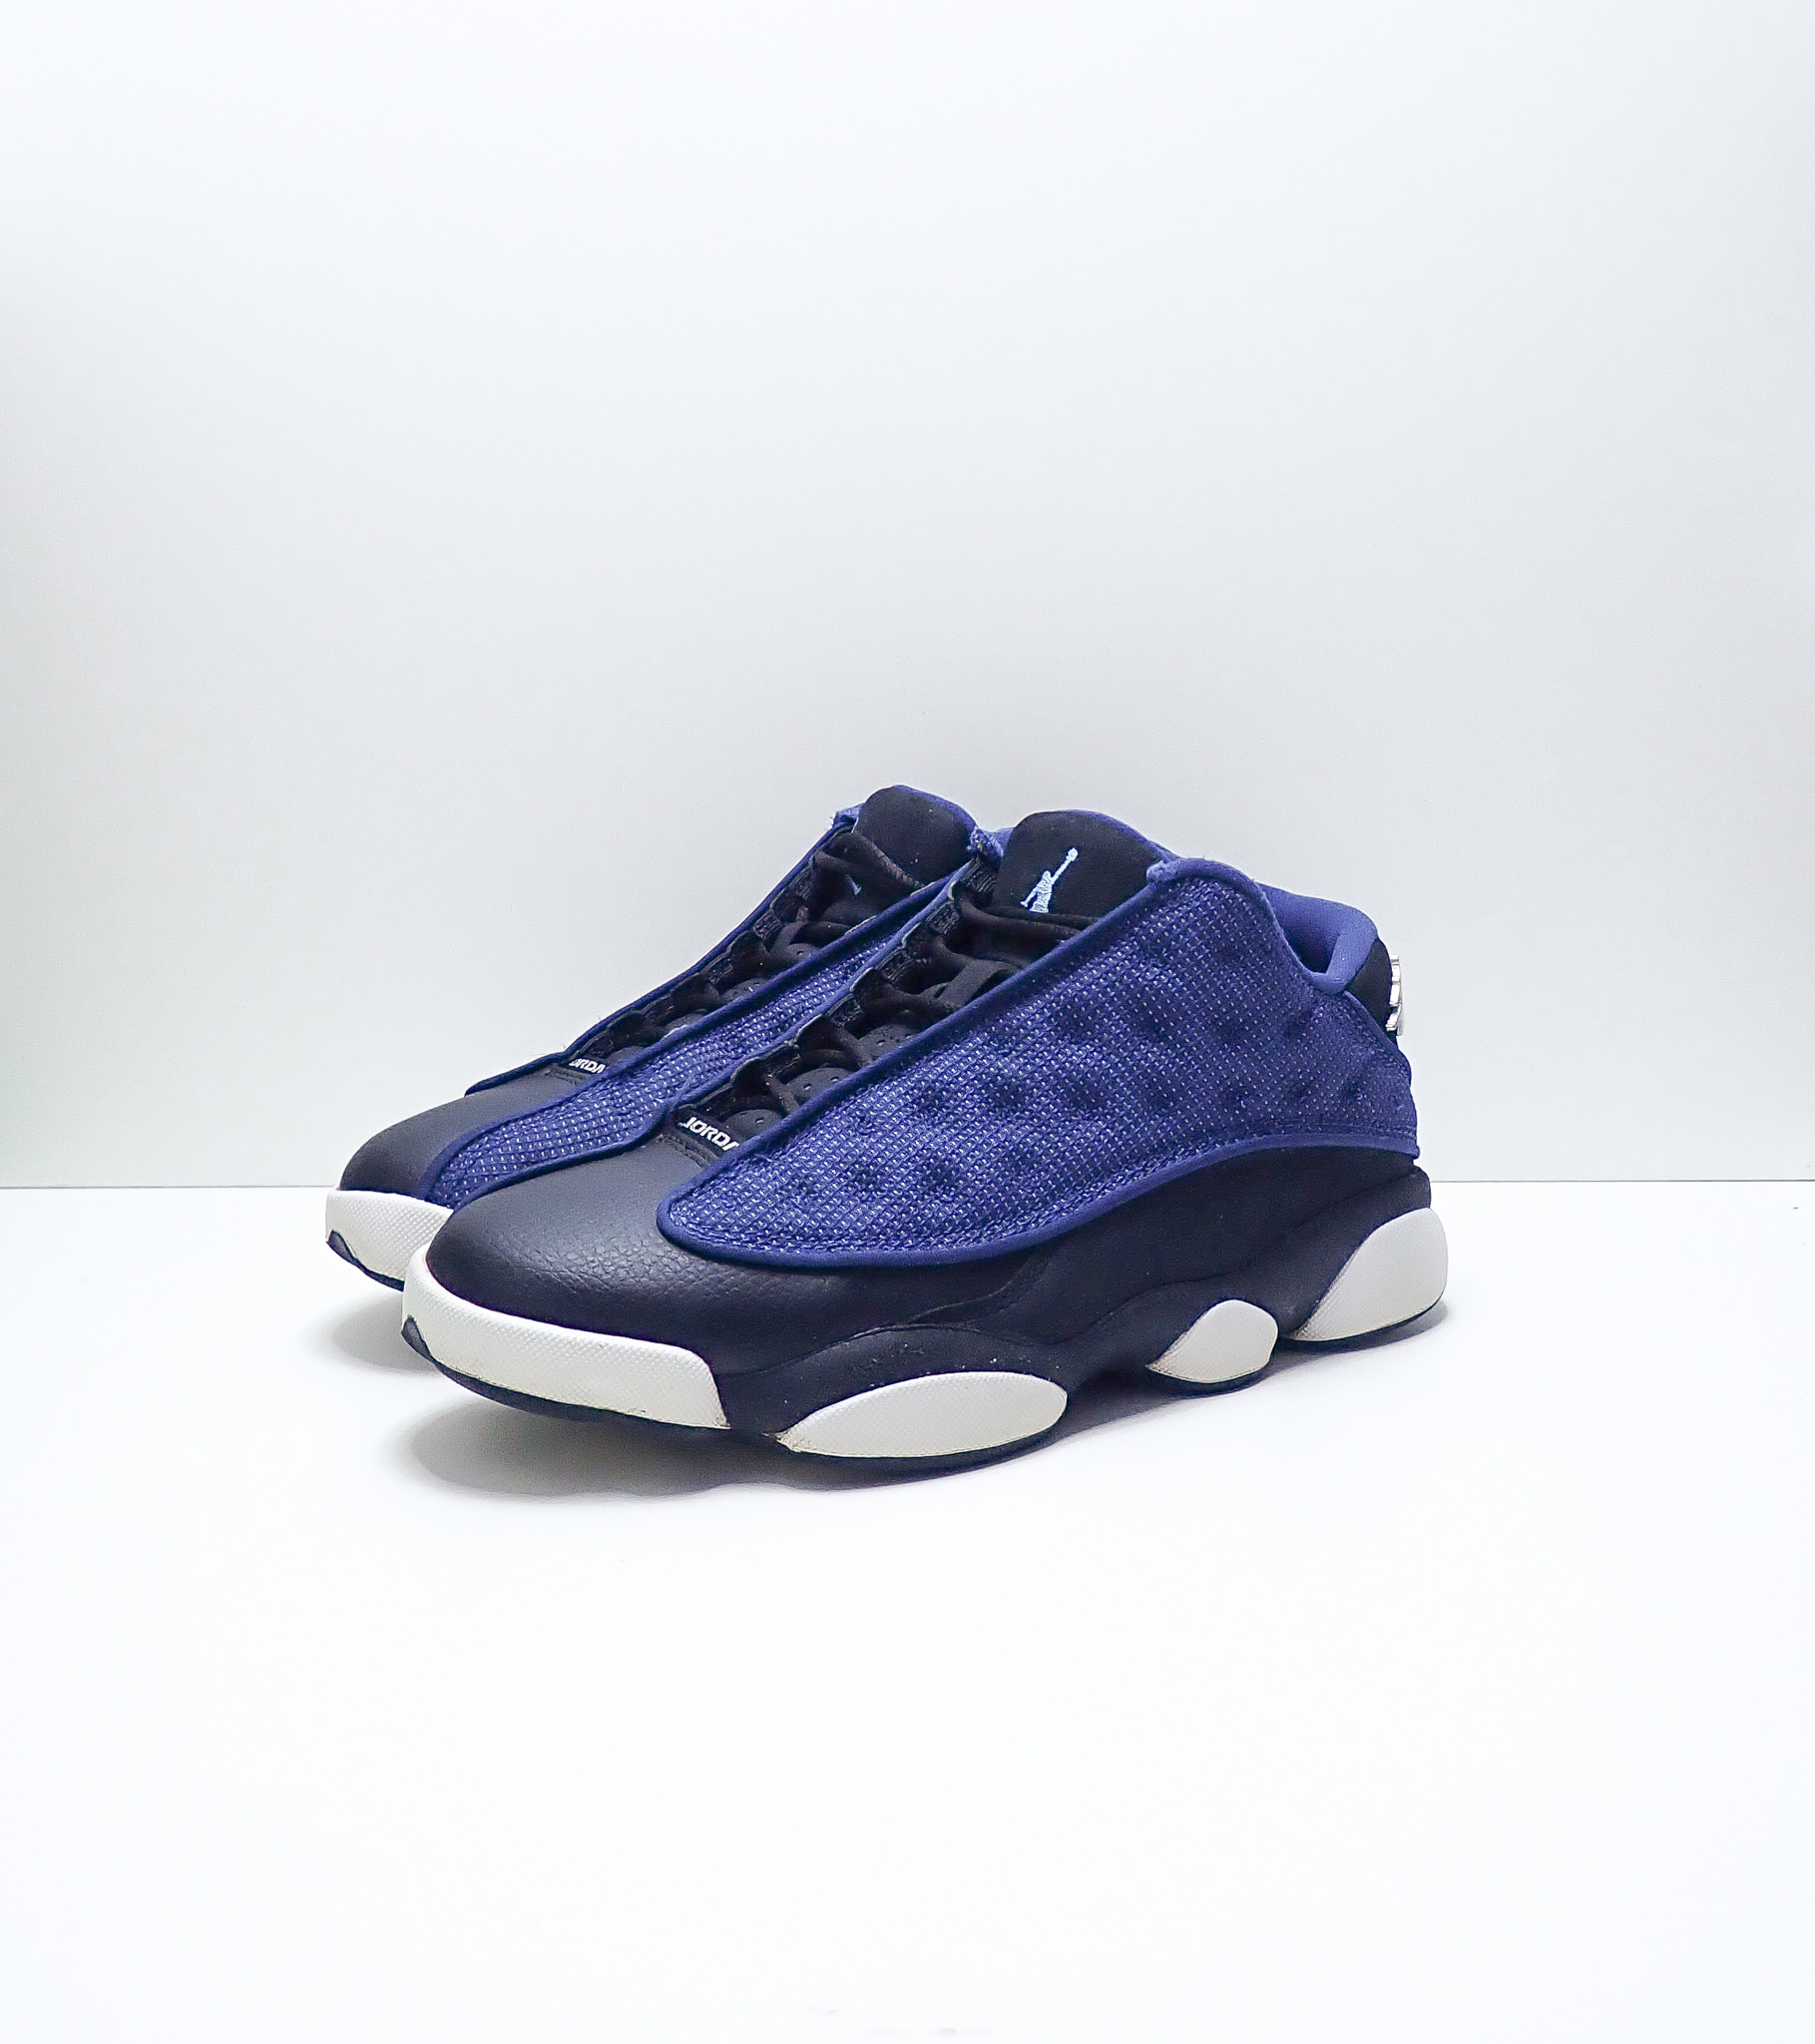 Jordan 13 Retro Low Brave Blue